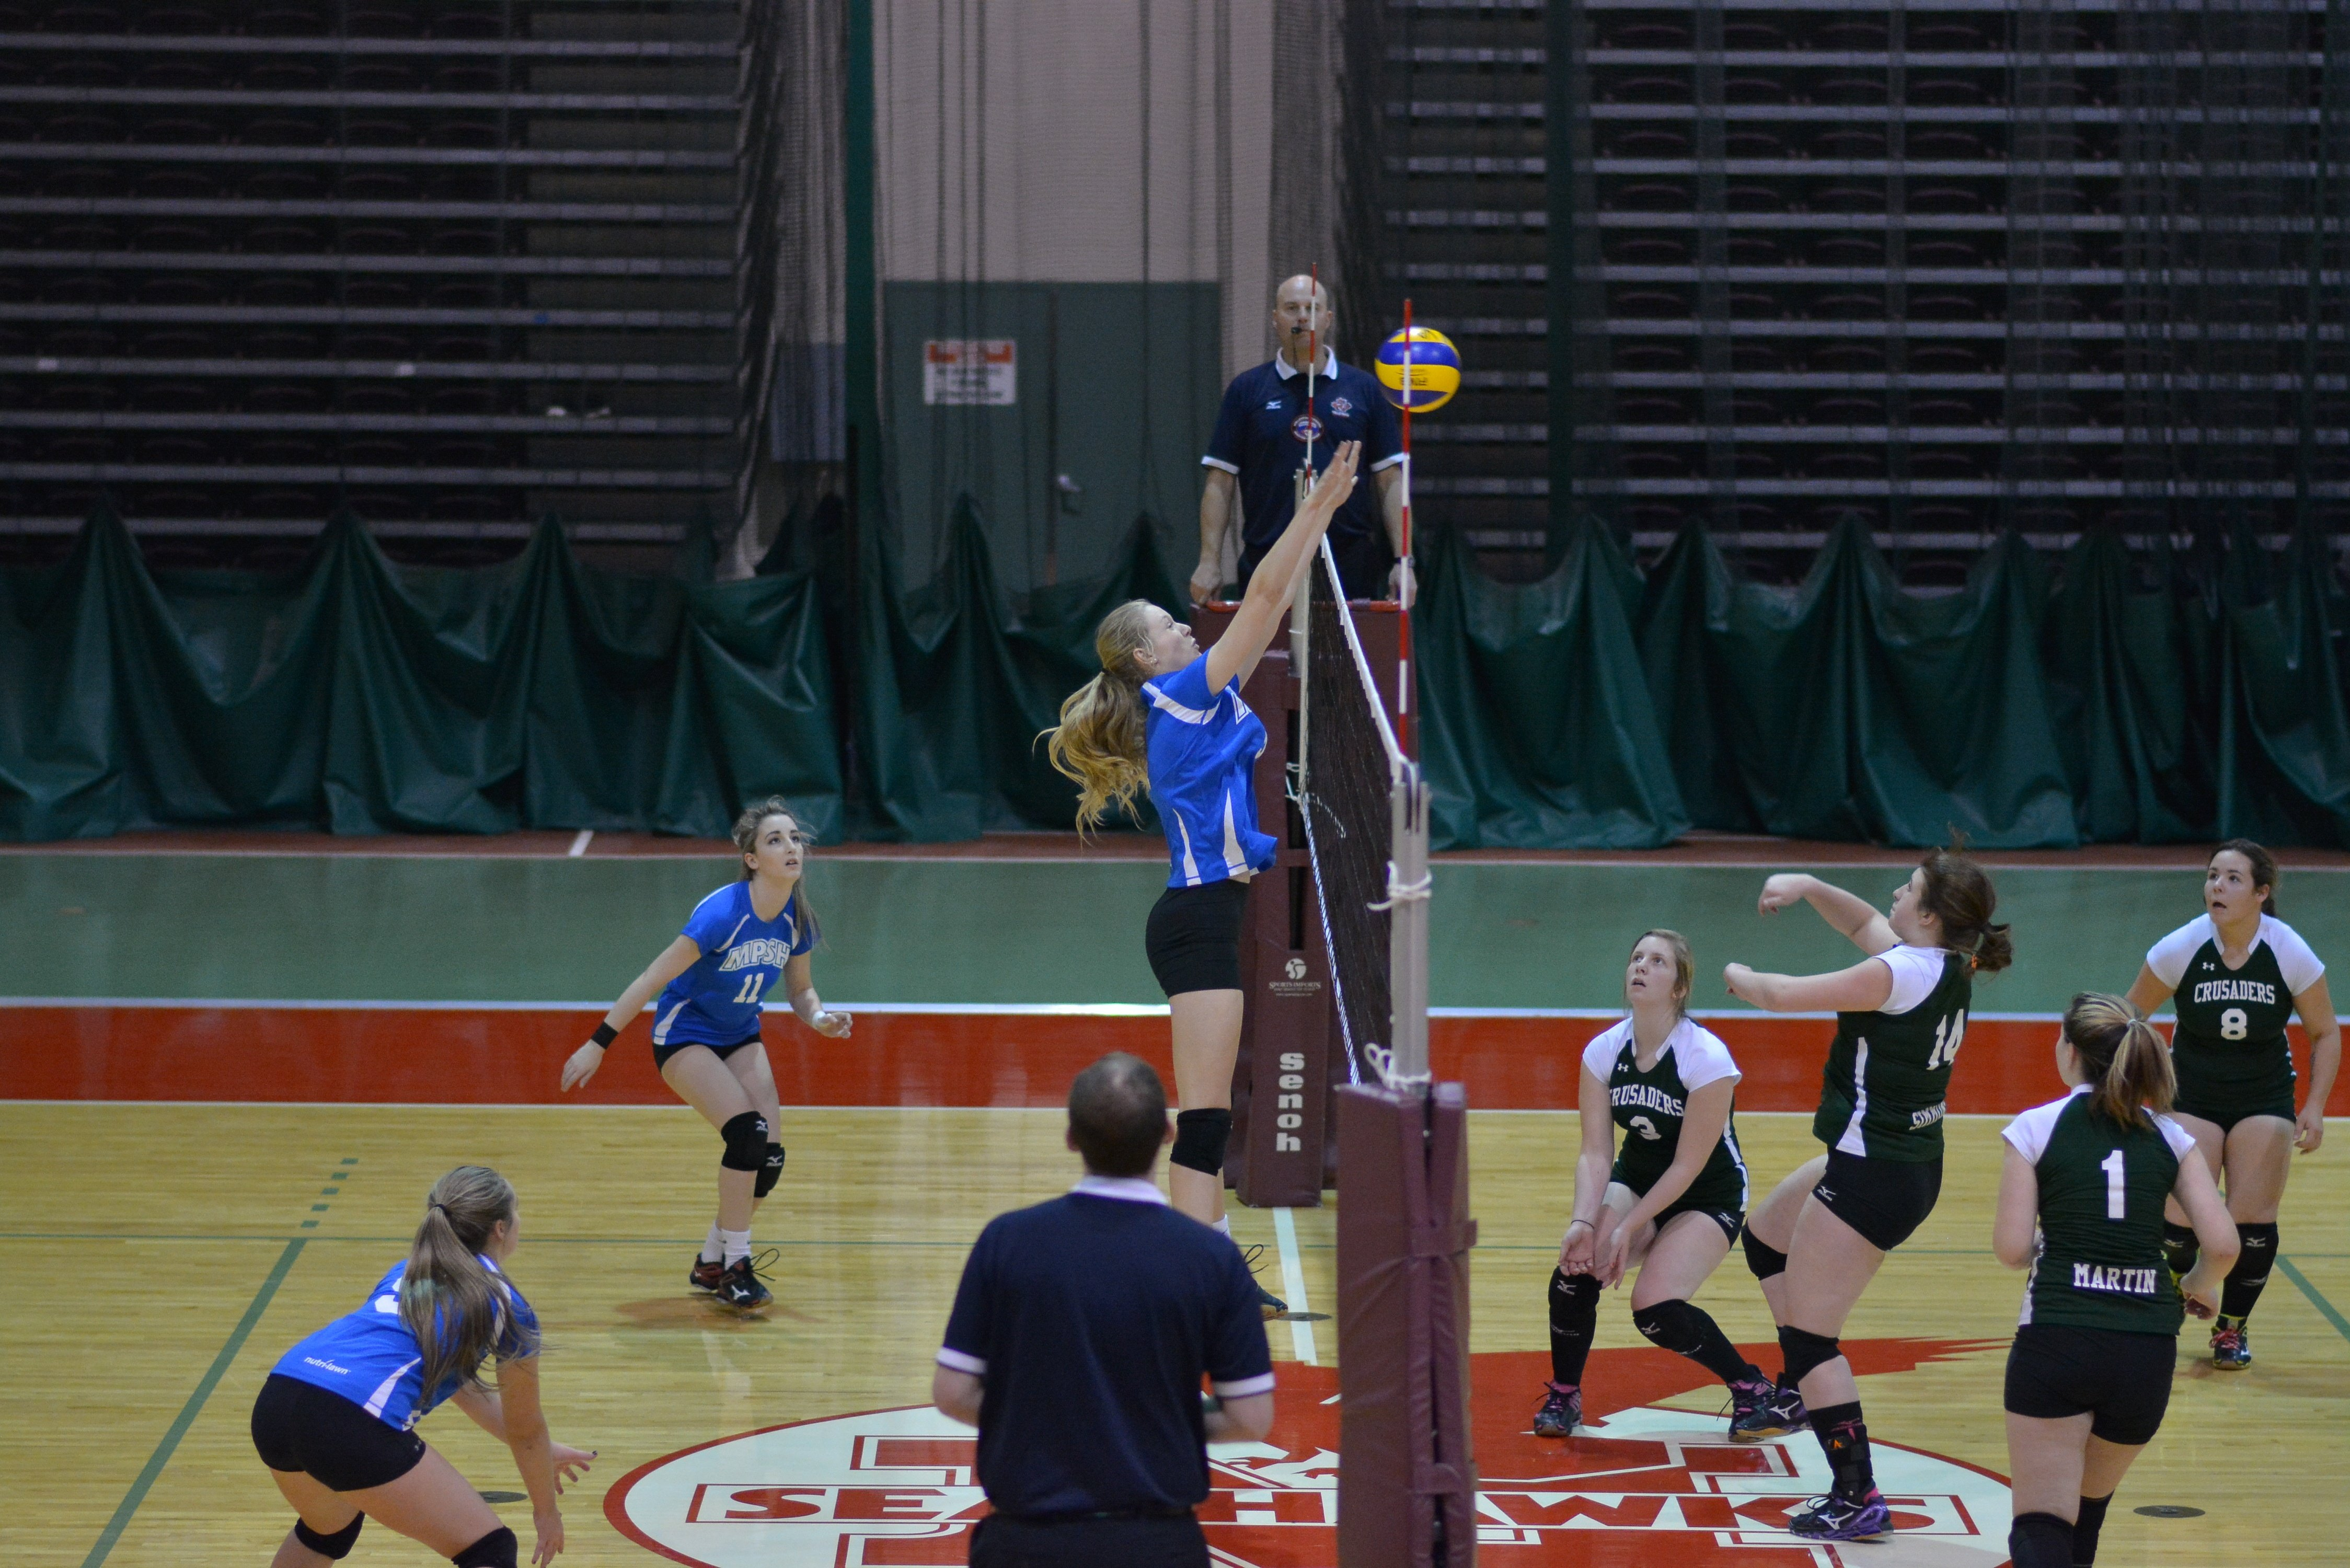 Nutri-Lawn supports Mount Pearl Senior High School Volleyball - Featured Image